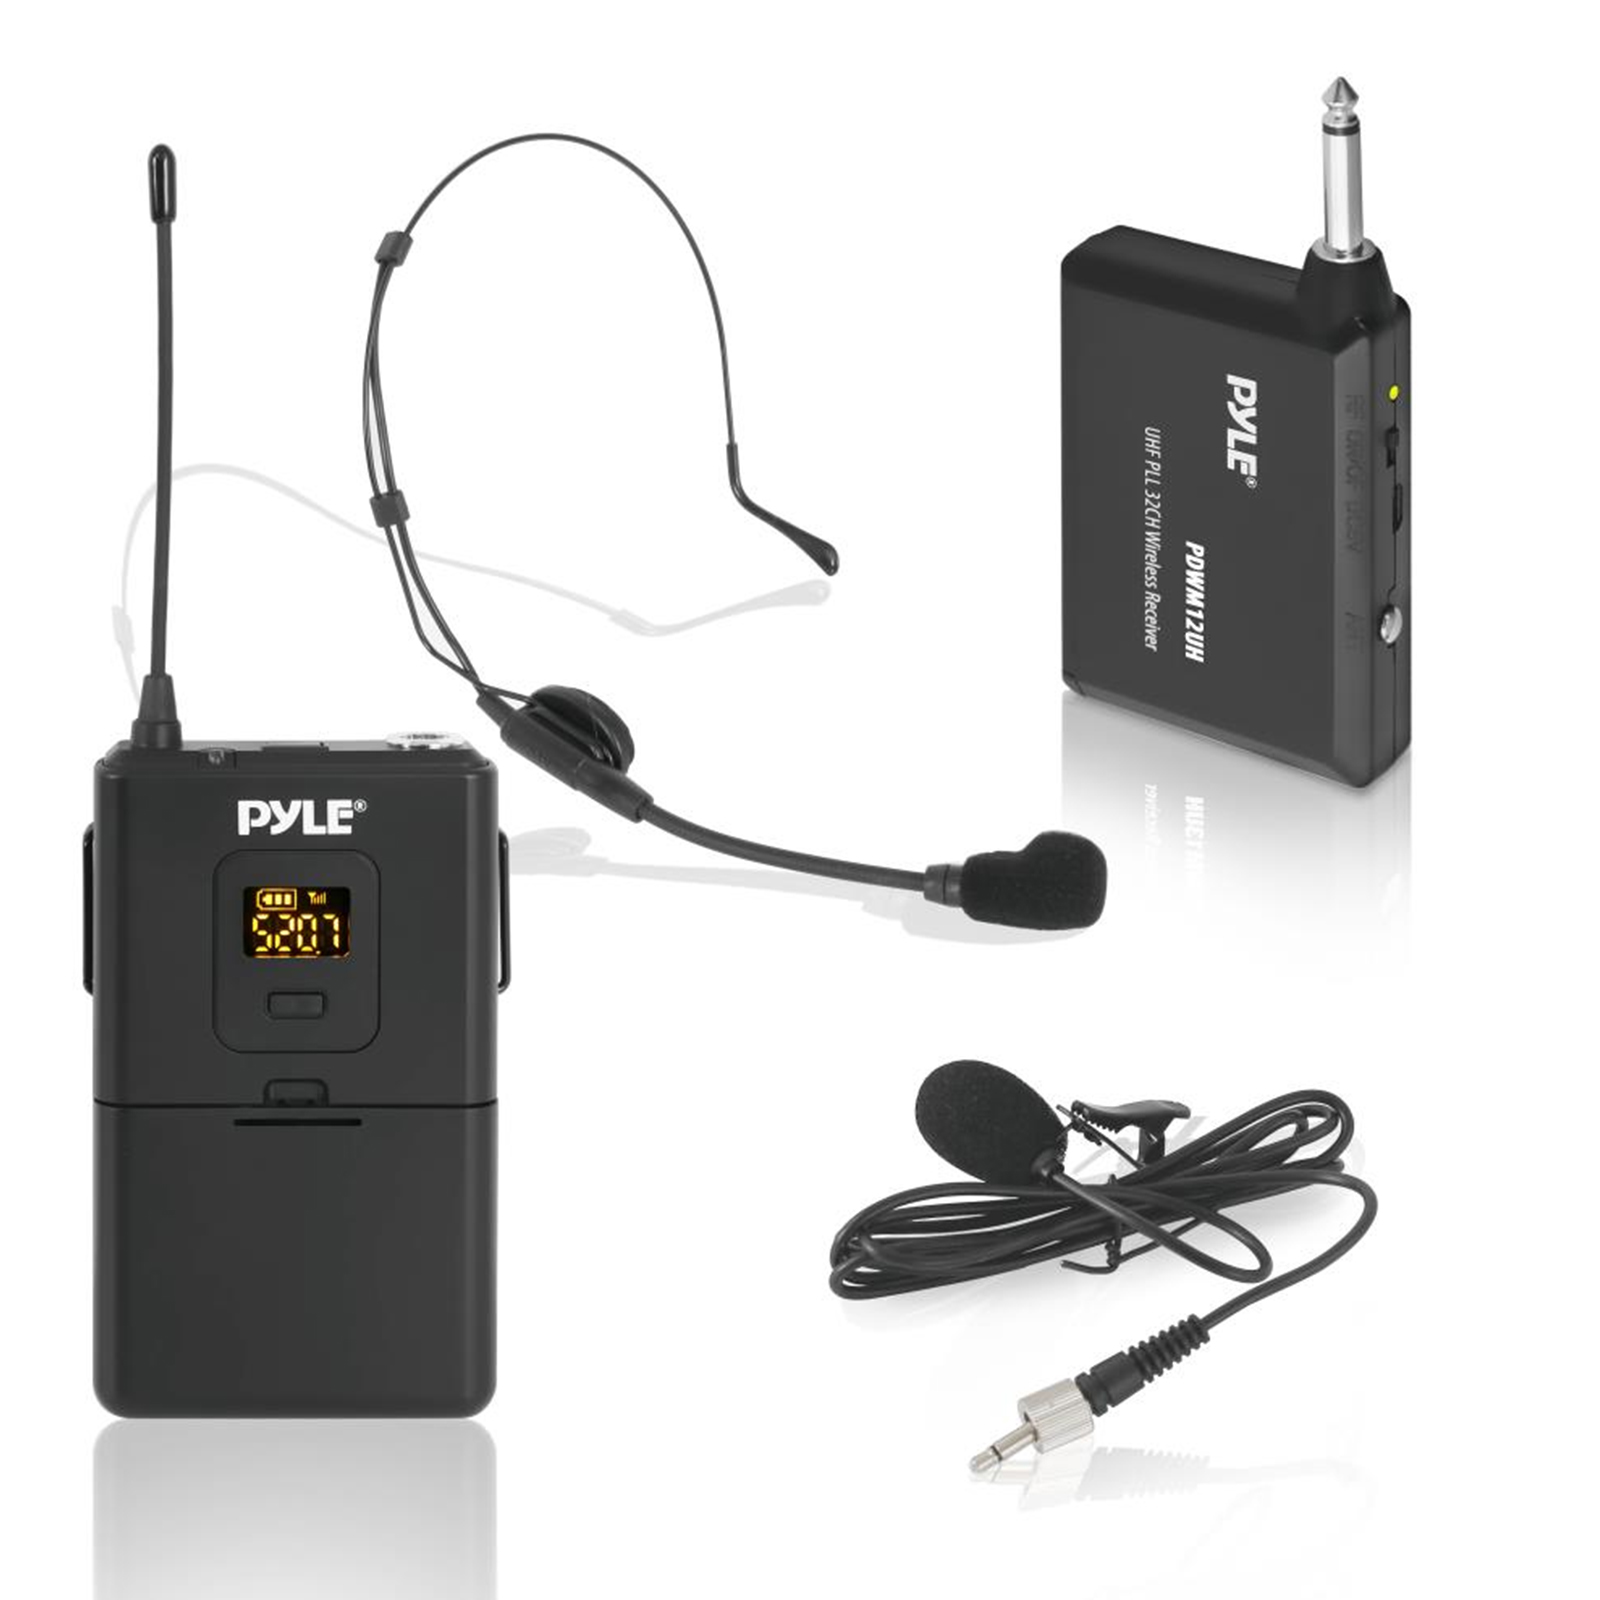 Pyle Wireless Microphone System, Beltpack Transmitter with Headset & Lavalier Mics by Pyle